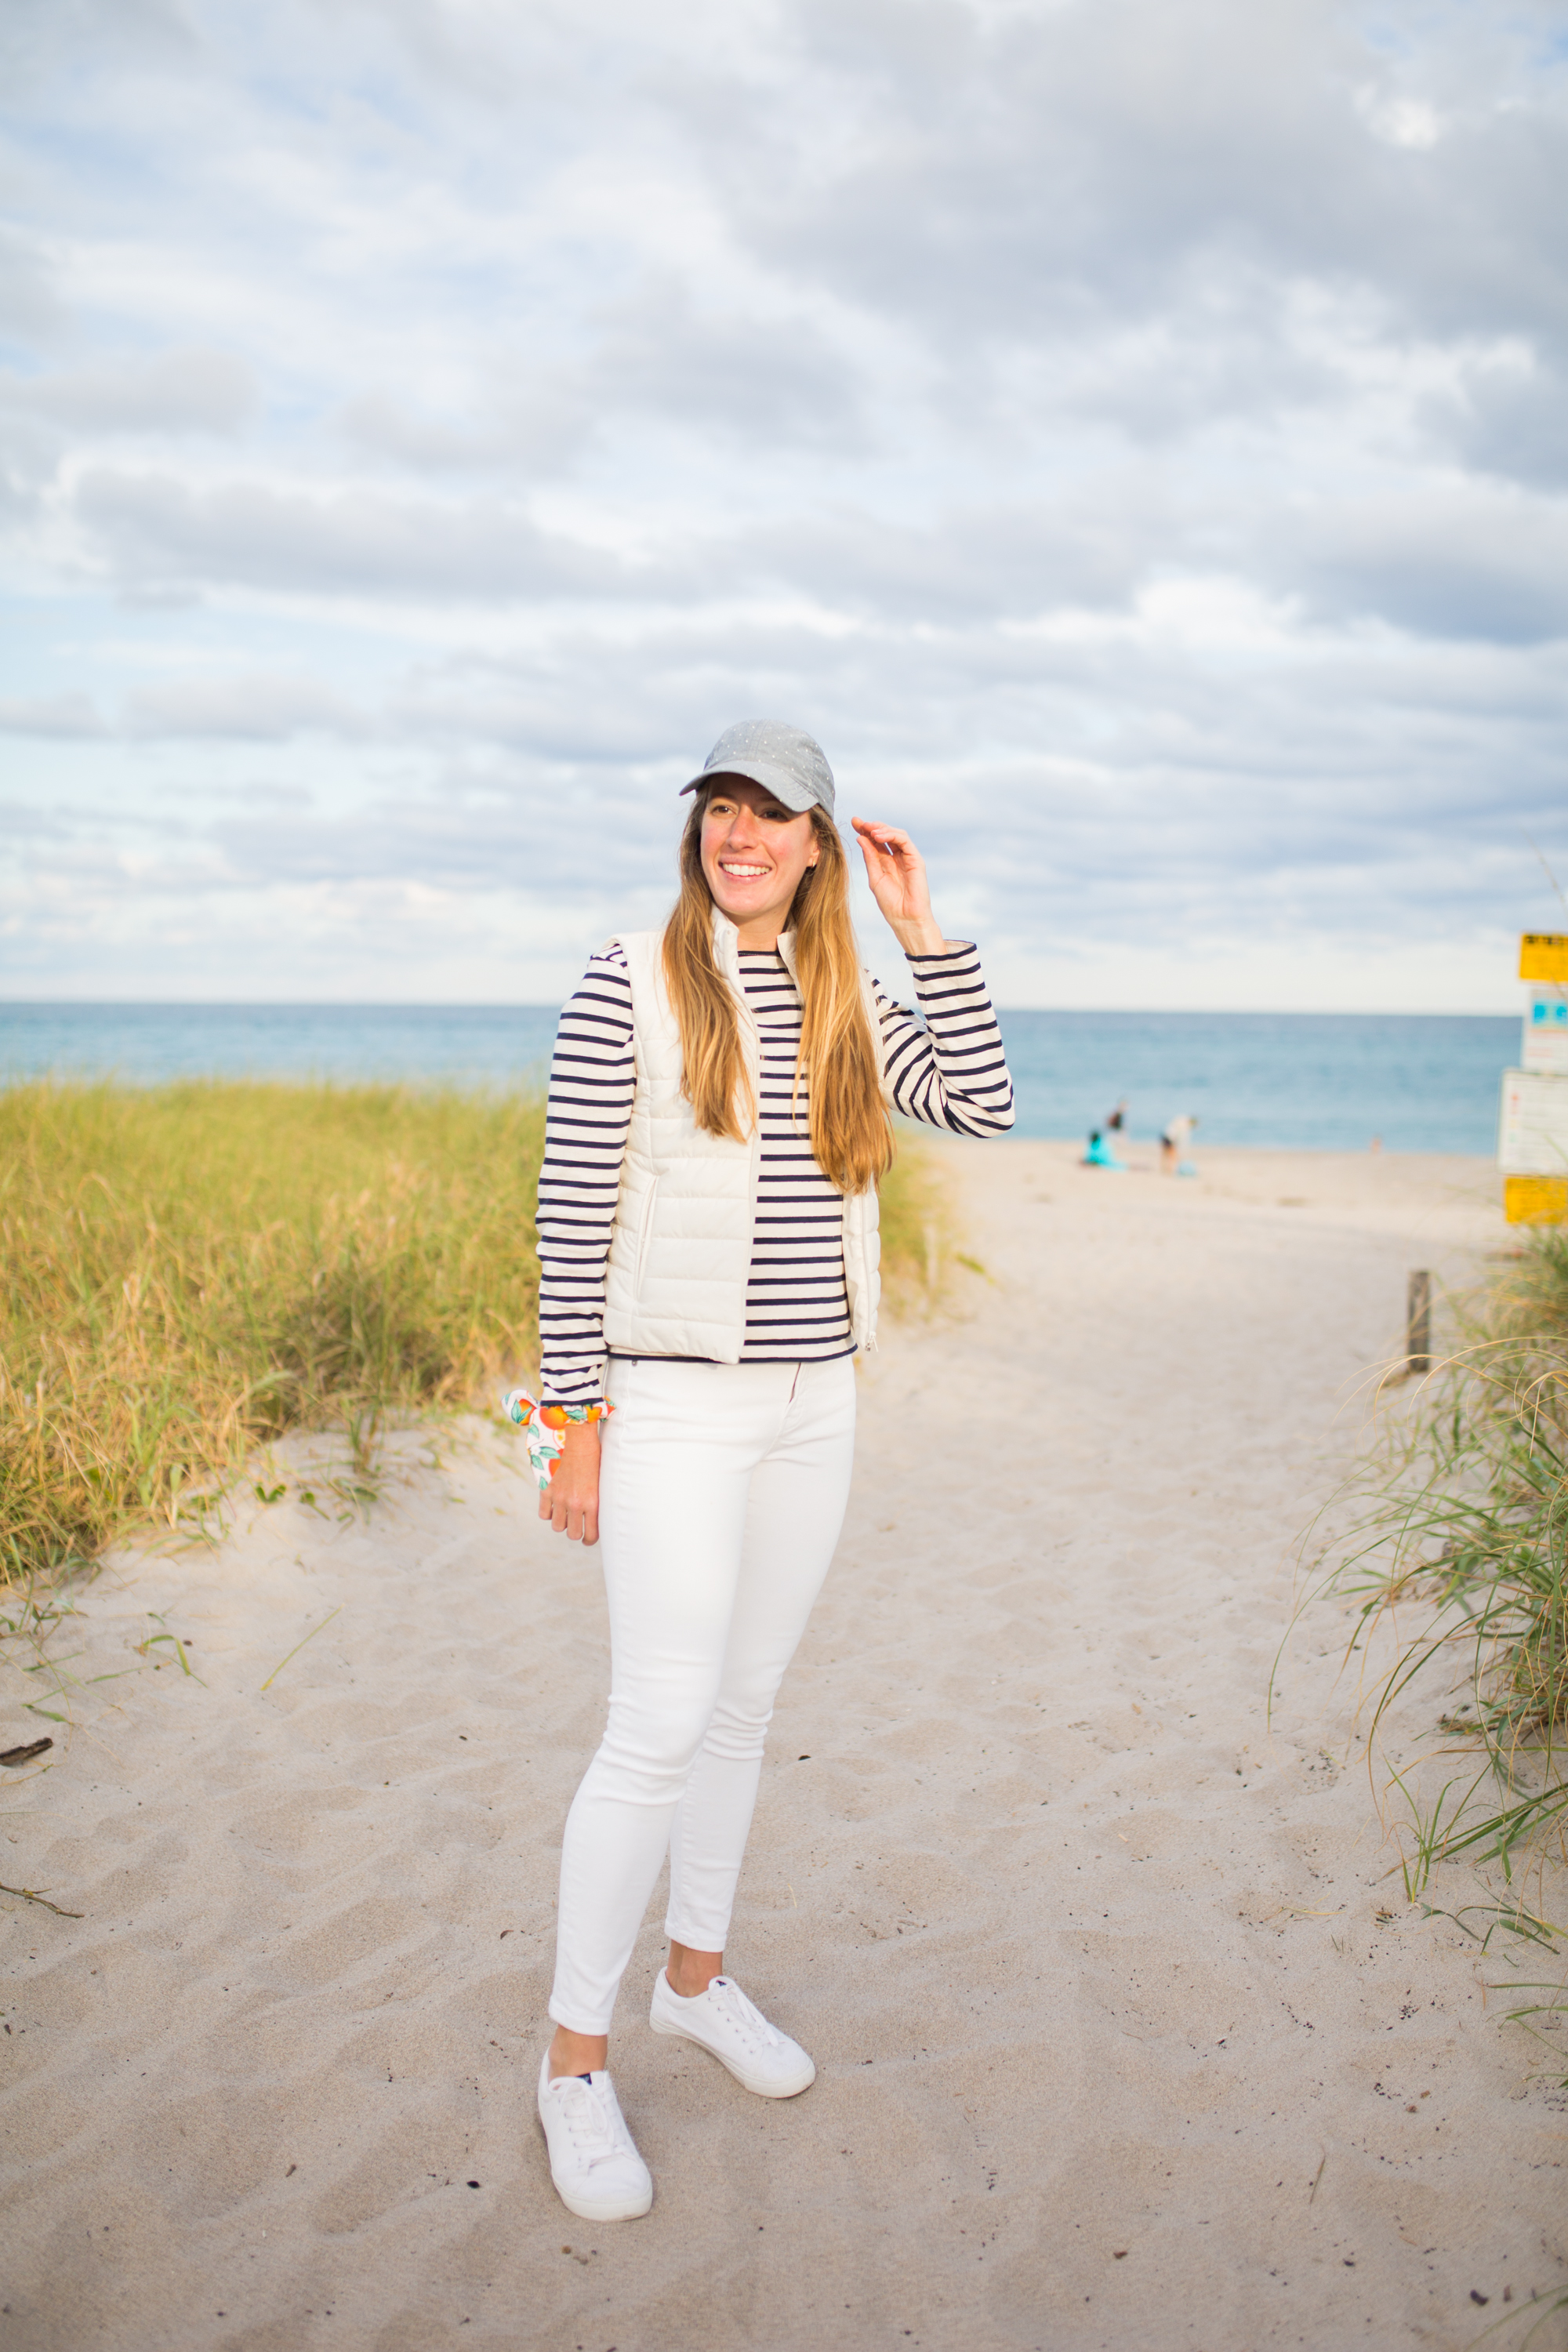 Saint James Breton Striped Shirt / American Style / Classic Style / Casual Outfit / Palm Beach Florida / How to Wear a Striped Top / White Jeans / Beach Style / Beach Outfit - Sunshine Style, A Florida Based Fashion Blog by Katie